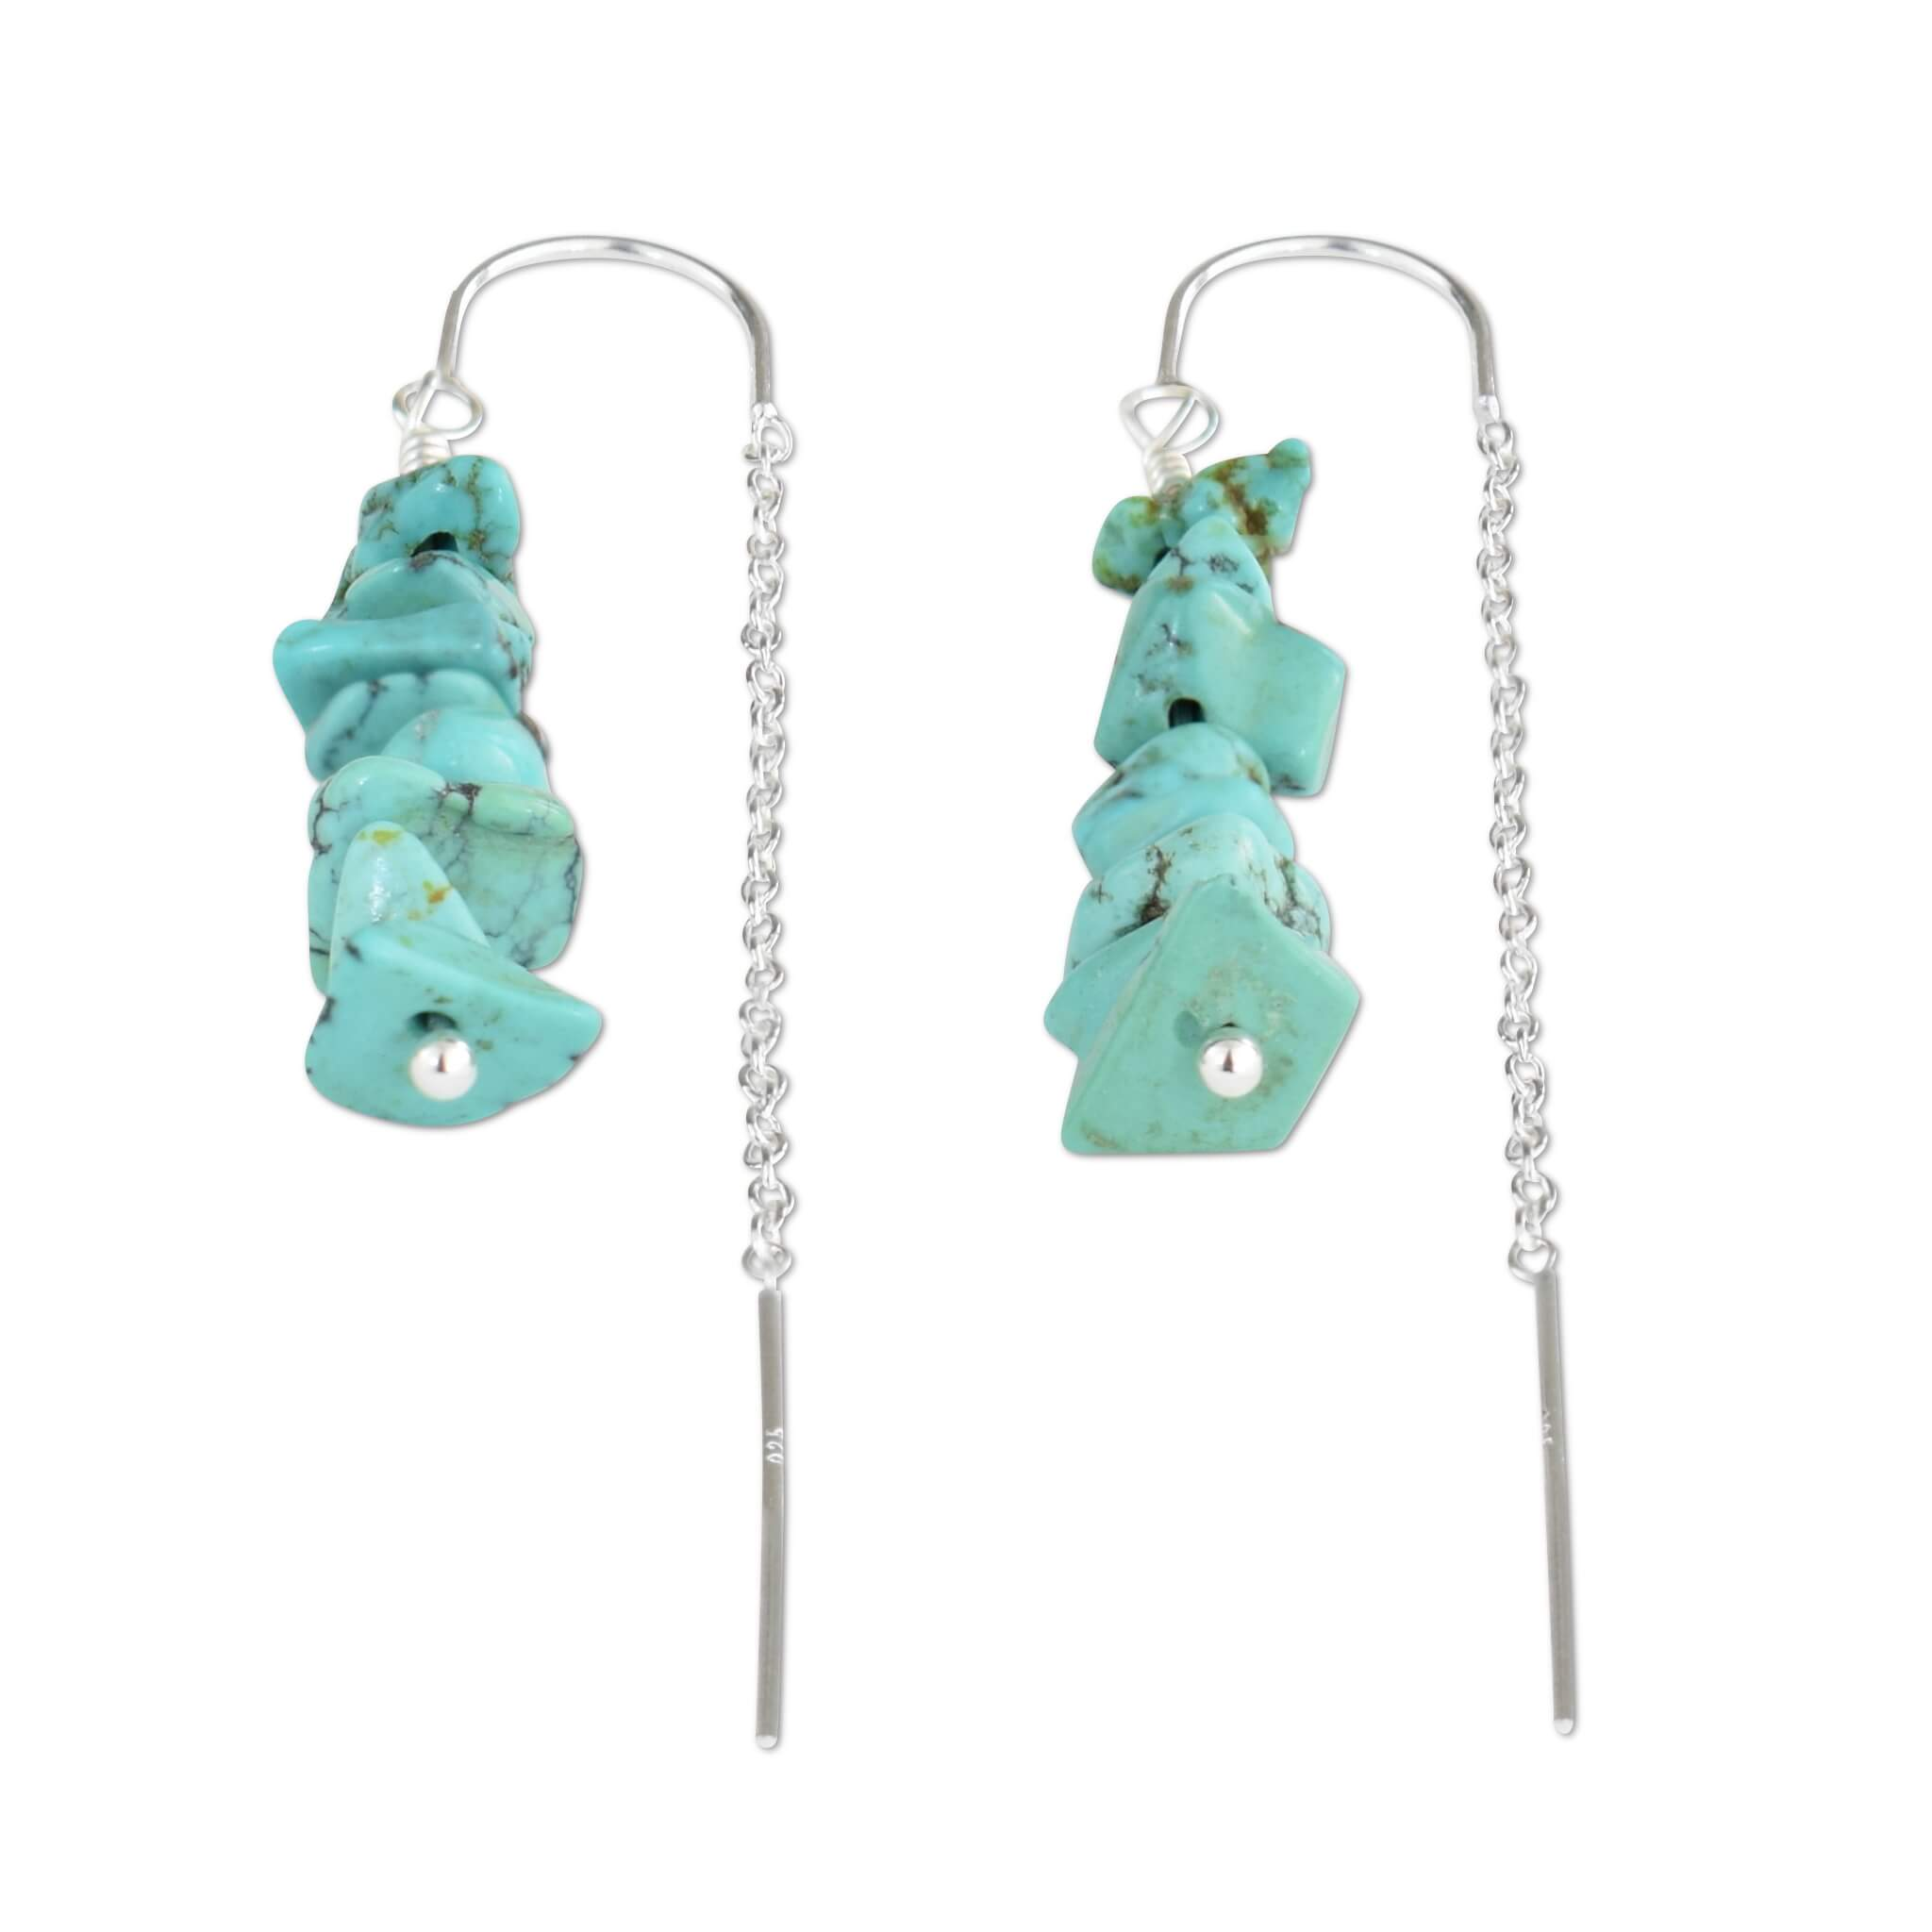 Turquoise Crystal Chain Threader Earrings - aymcollections